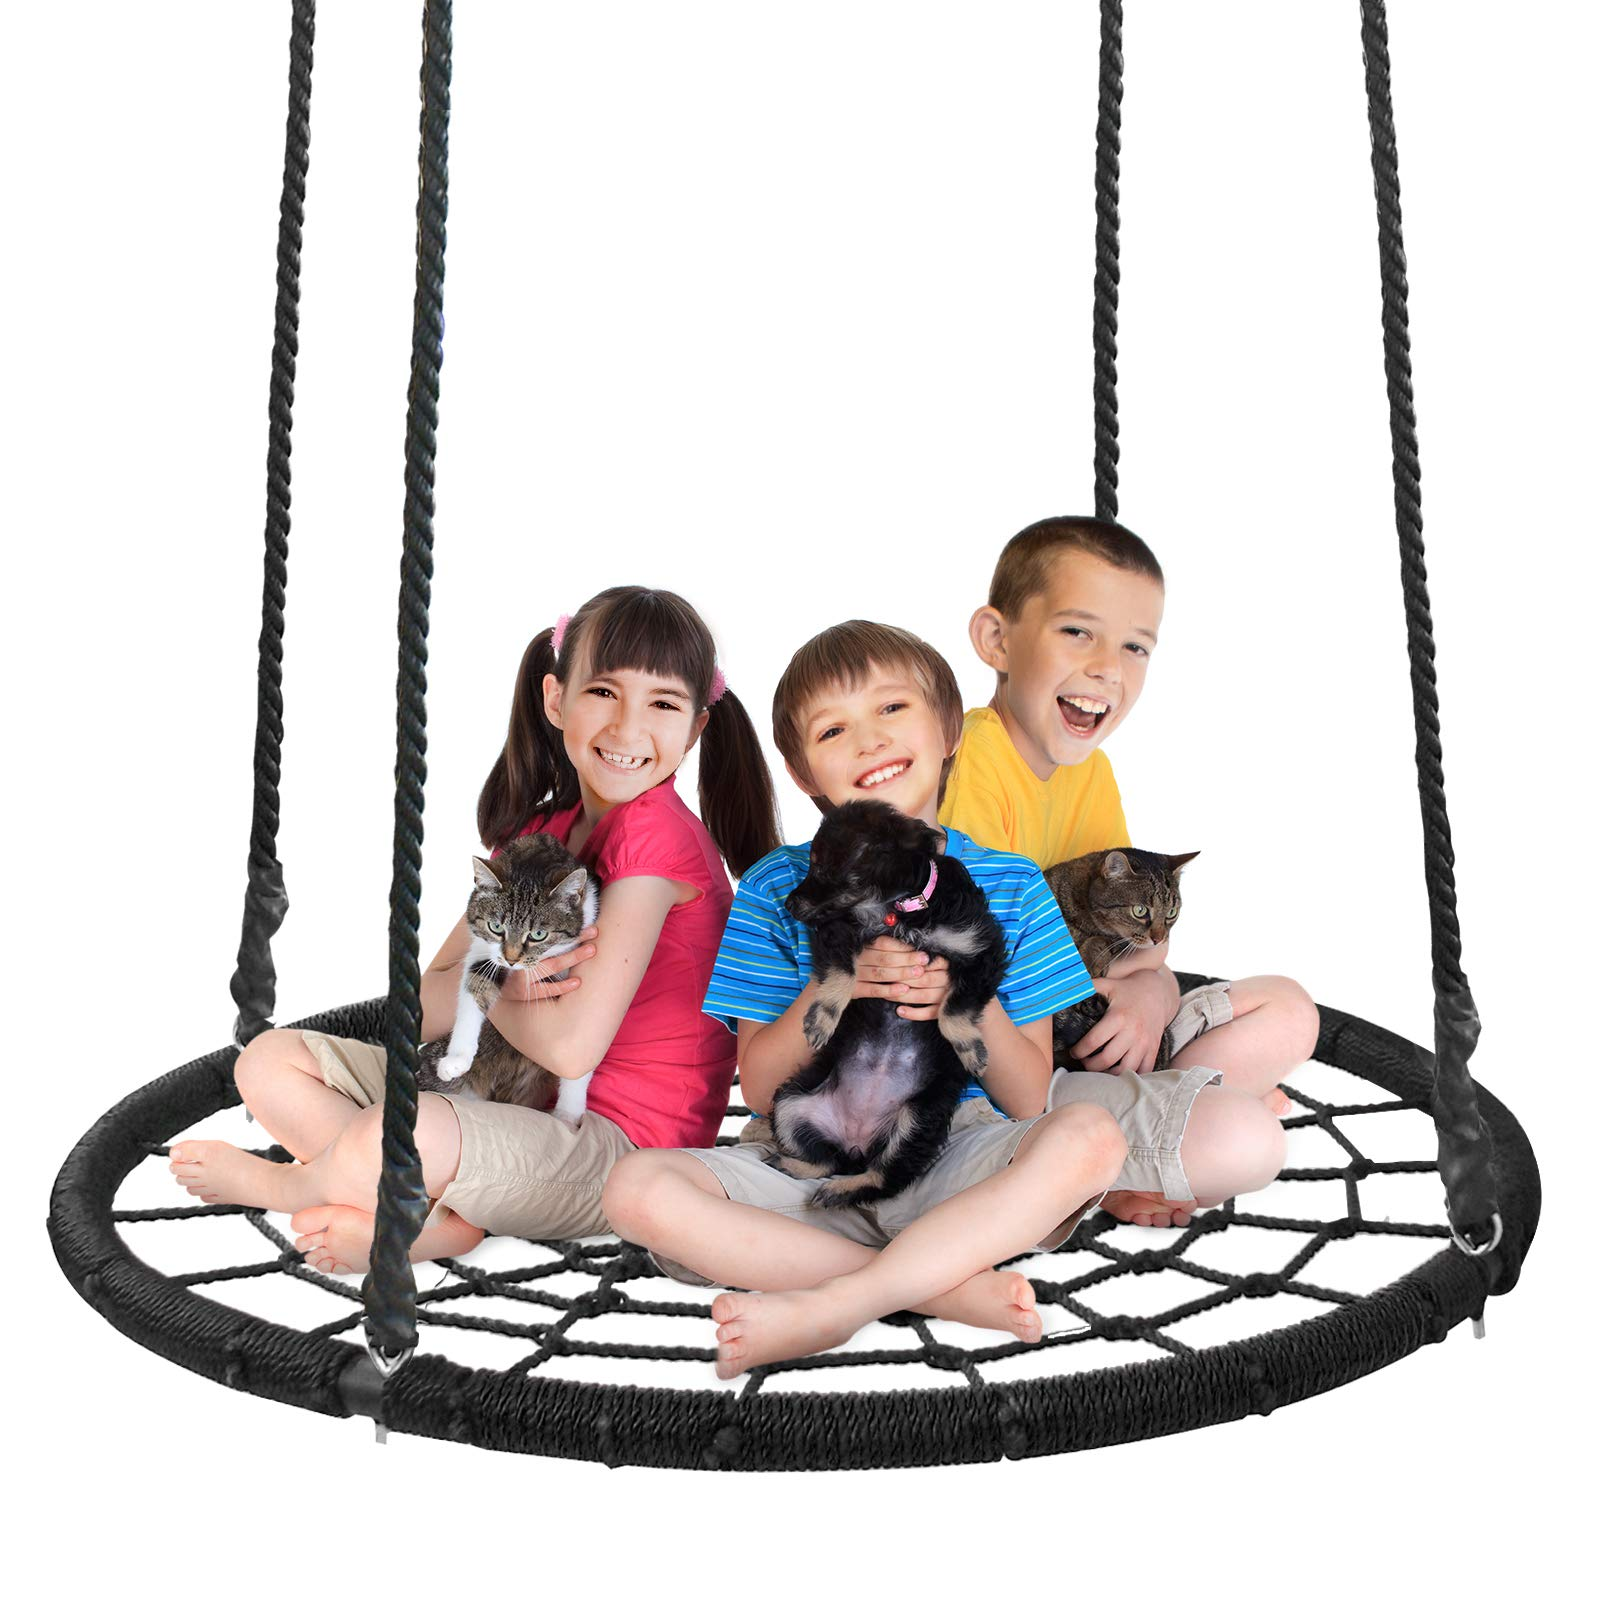 Super Deal XXL 48'' Web Tree Swing Set - Largest Platform - 360°Rotate° - 71'' Adjustable Detachable Nylon Rope - Attaches to Trees or Swing Sets - for Multiple Kids or Adult (48'') by SUPER DEA